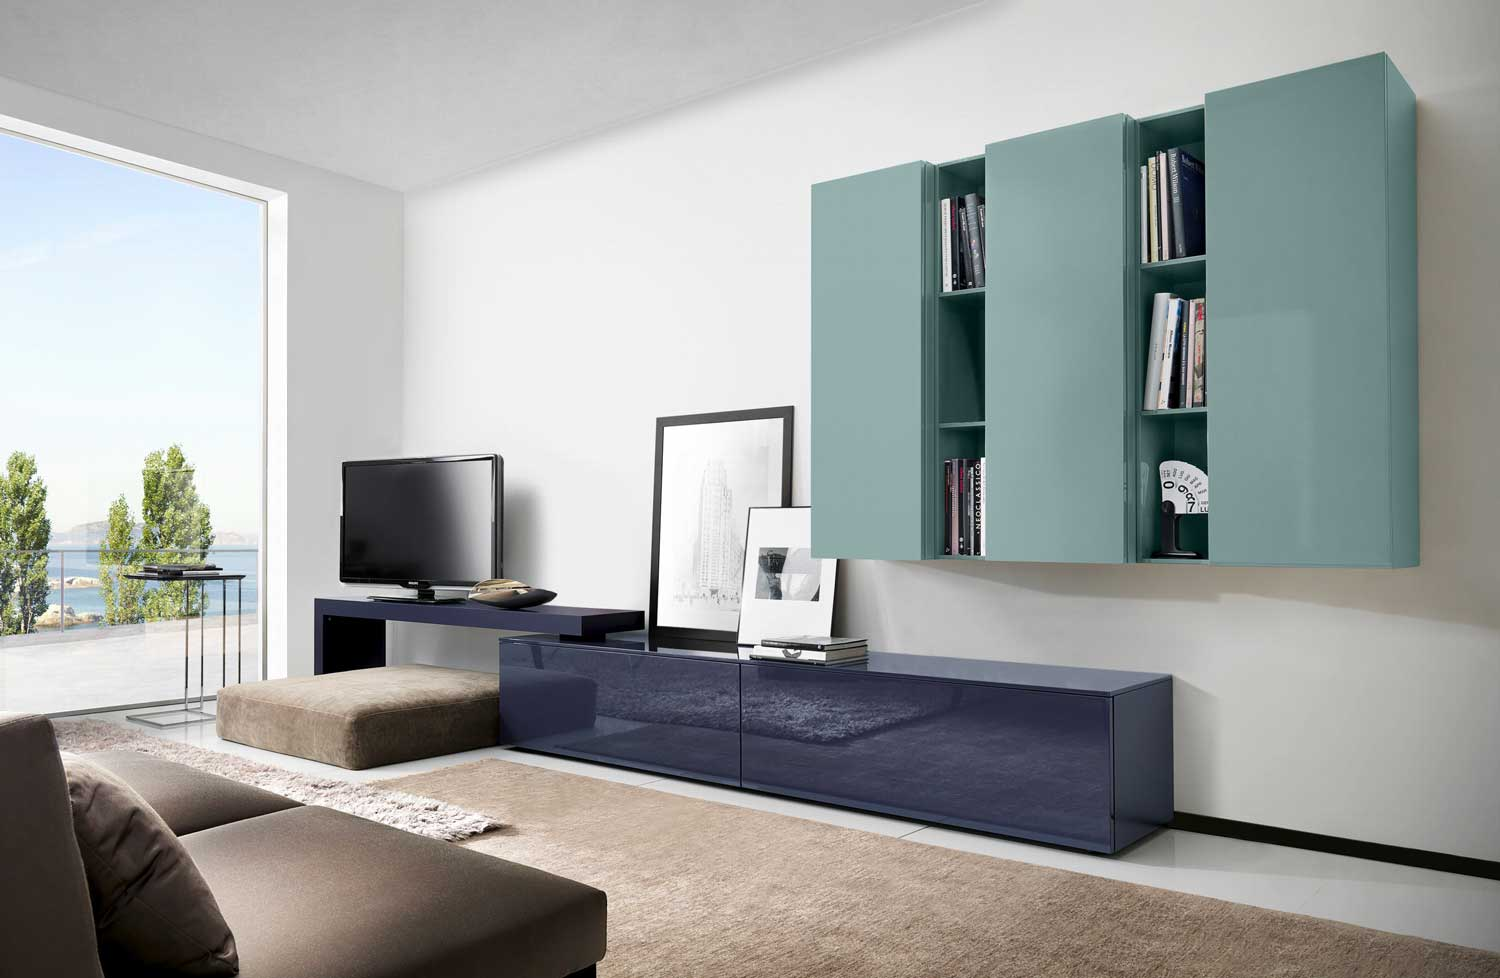 Cerezo meubles decoration amenagement interieur design for Amenagement interieur design contemporain